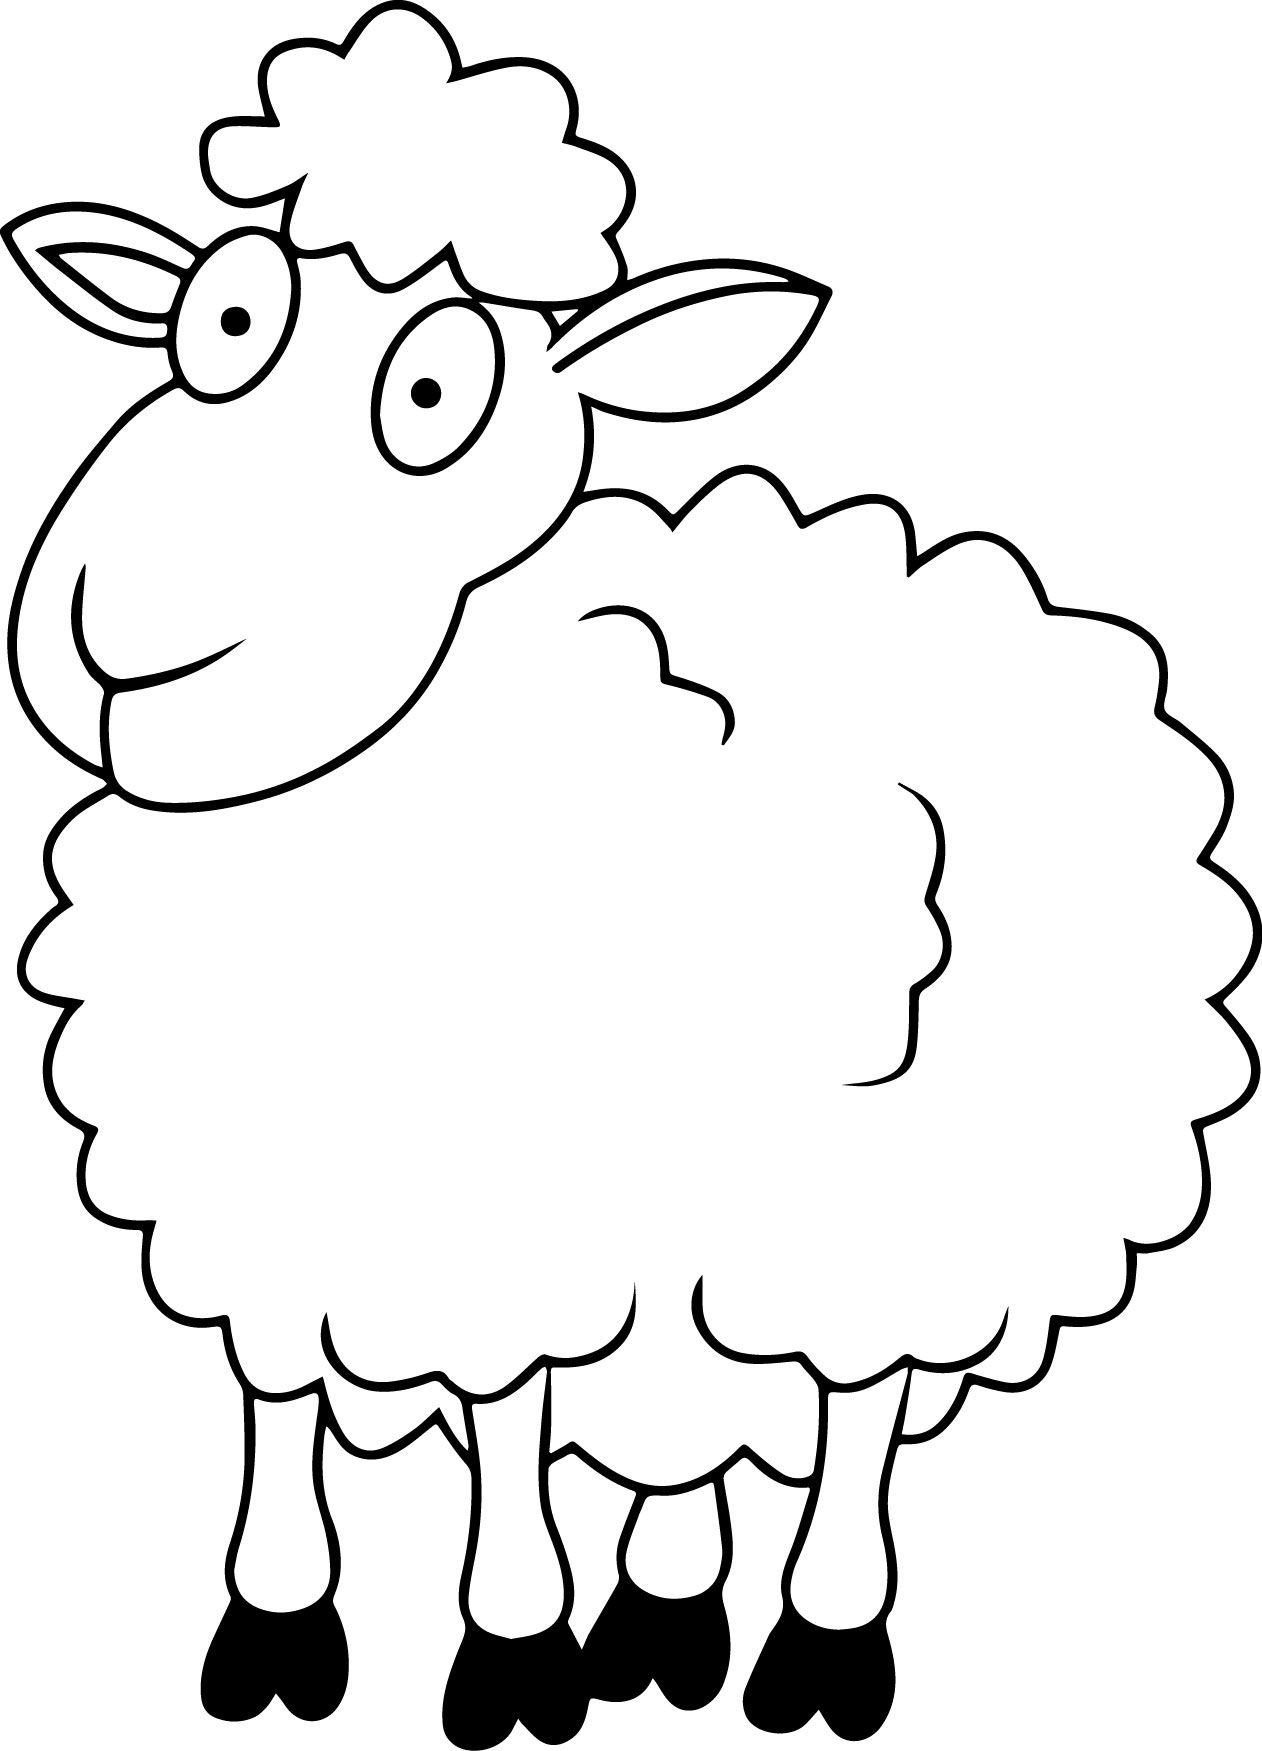 sheep coloring pages free printable printable sheep that are sweet derrick website printable sheep coloring pages free